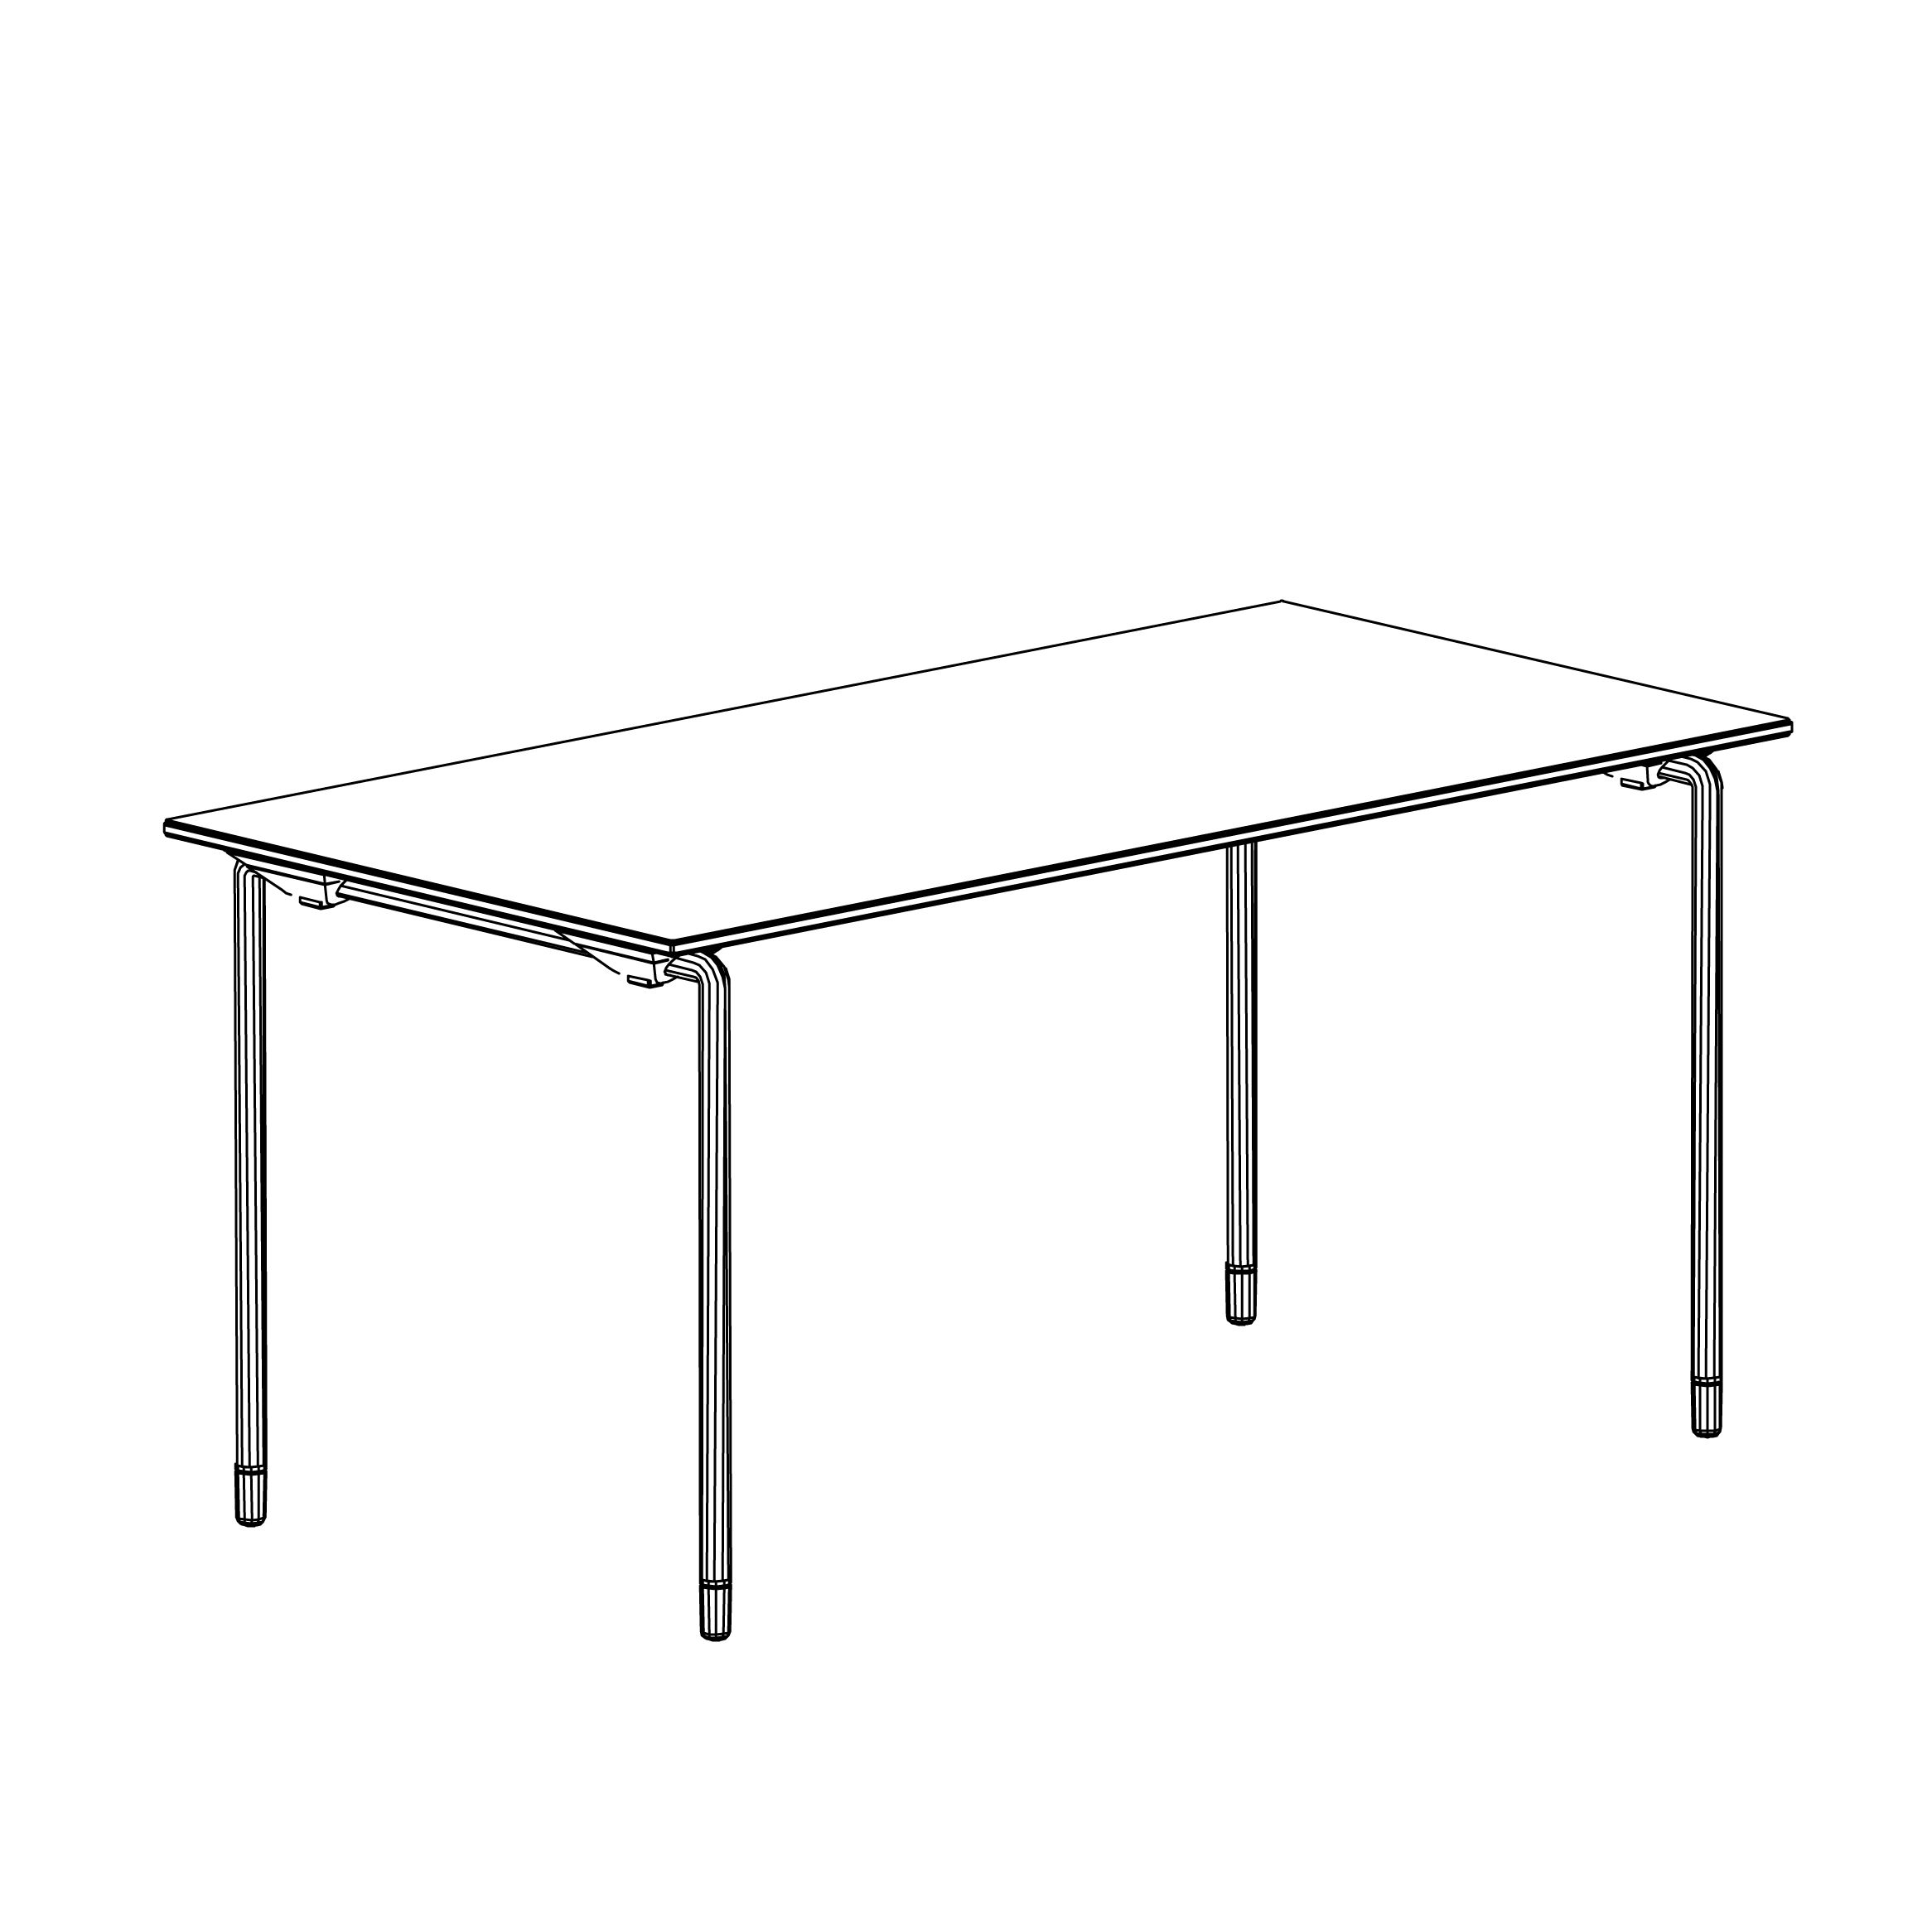 furniture sketch of the table plico designed by komplot